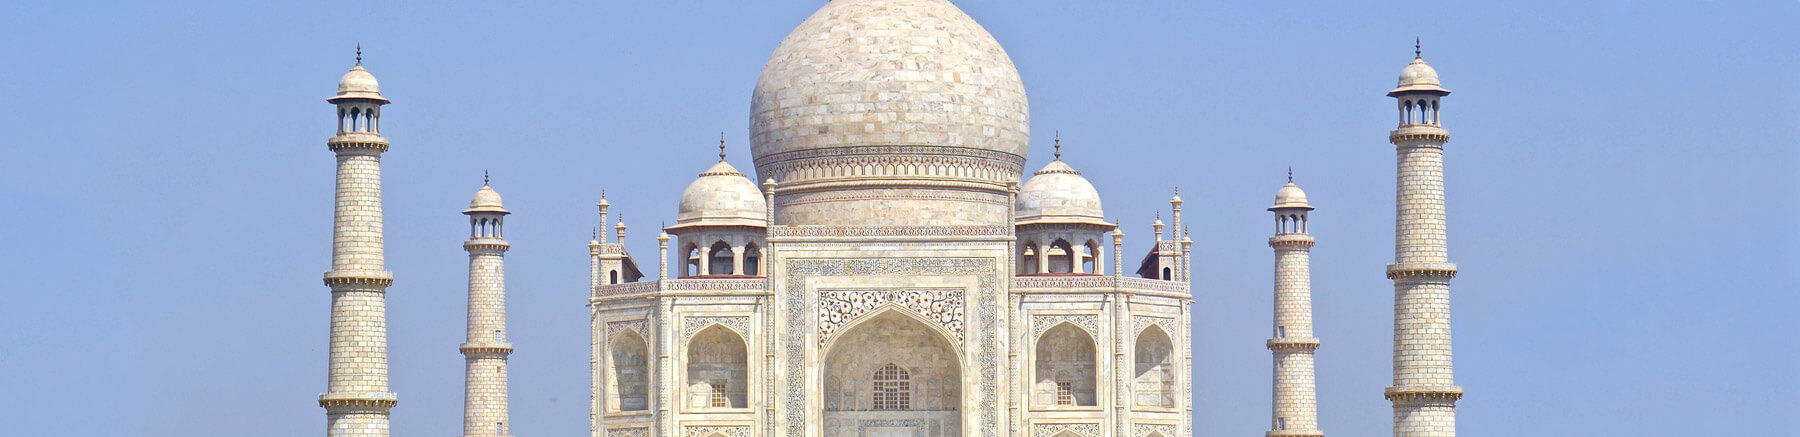 Close-up van de Taj Mahal in Agra, India